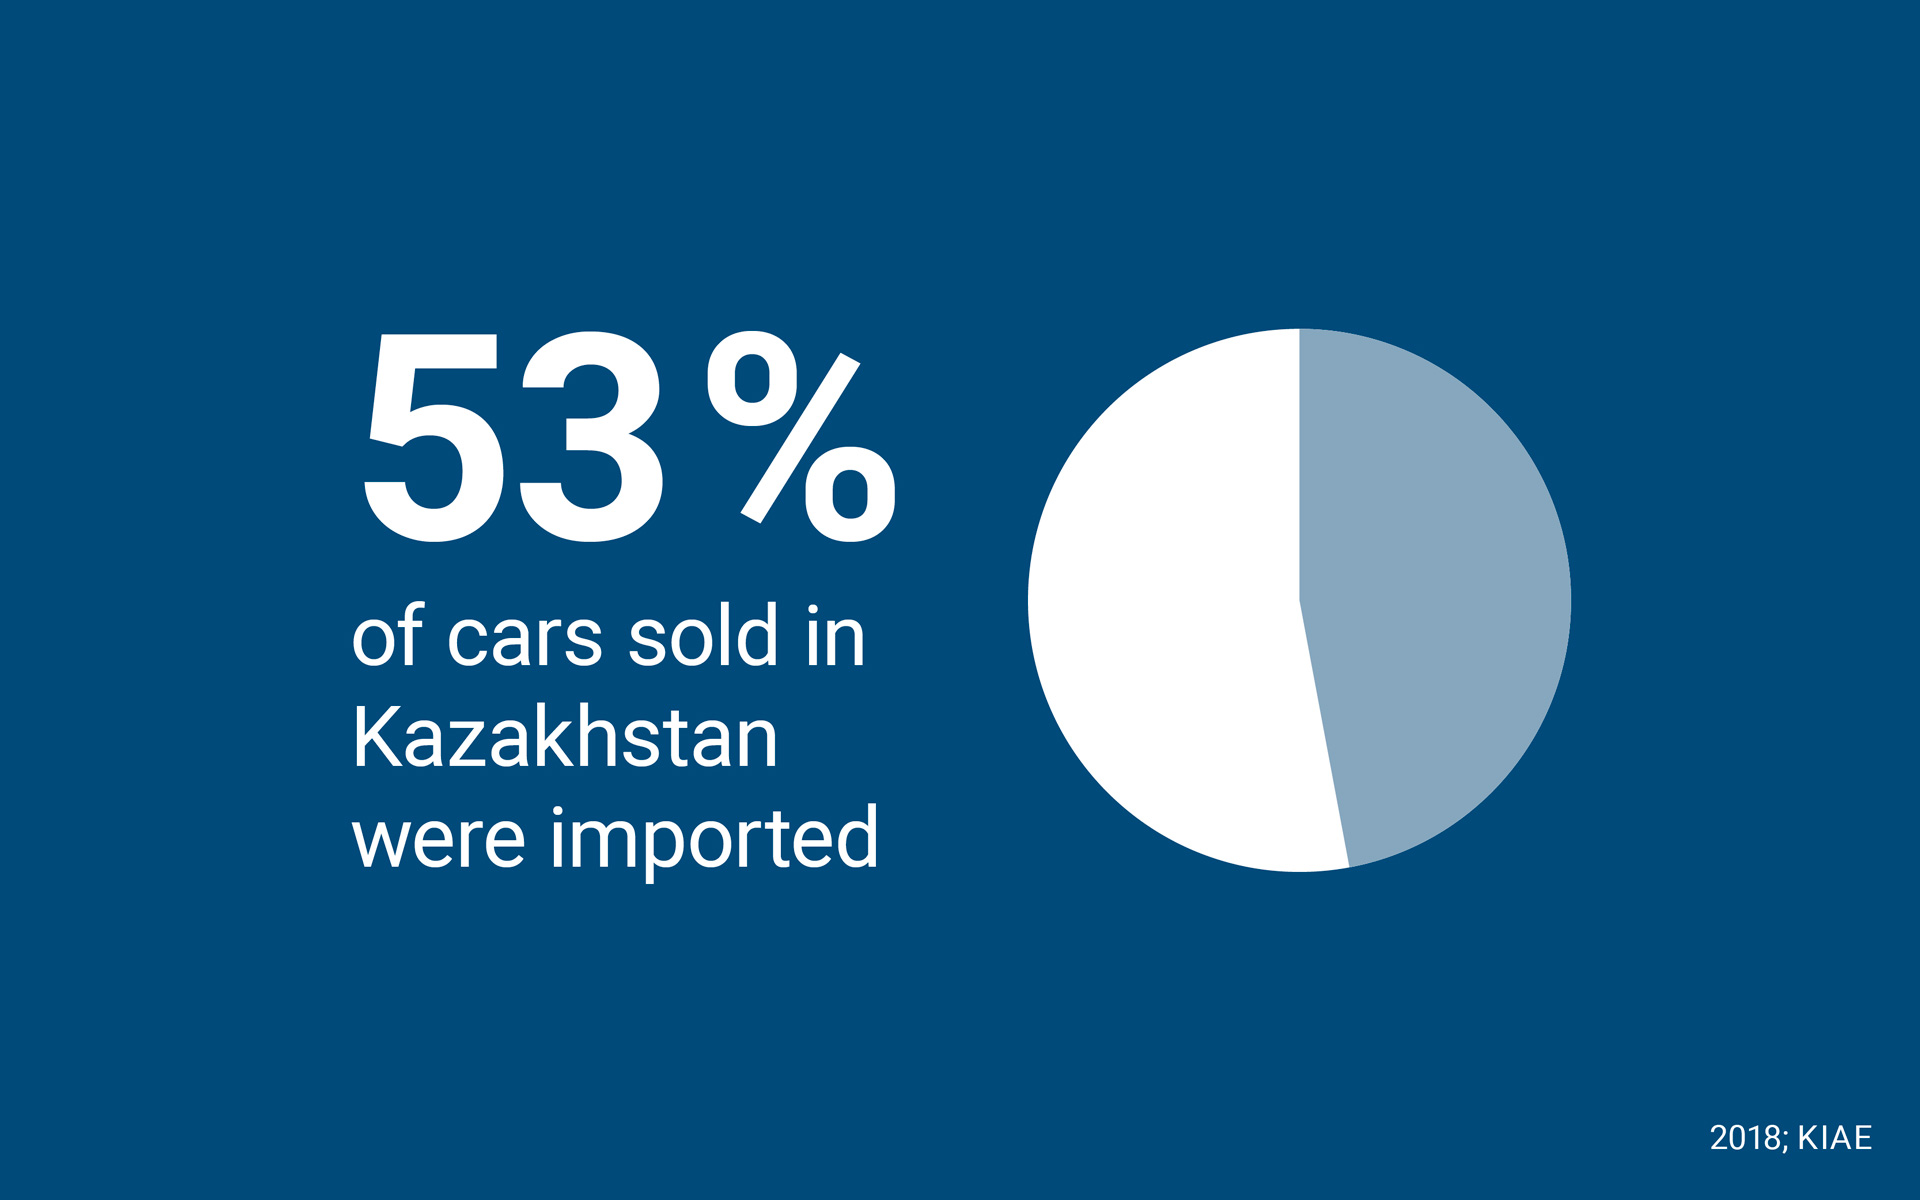 53% of cars sold in Kazakhstan were imported